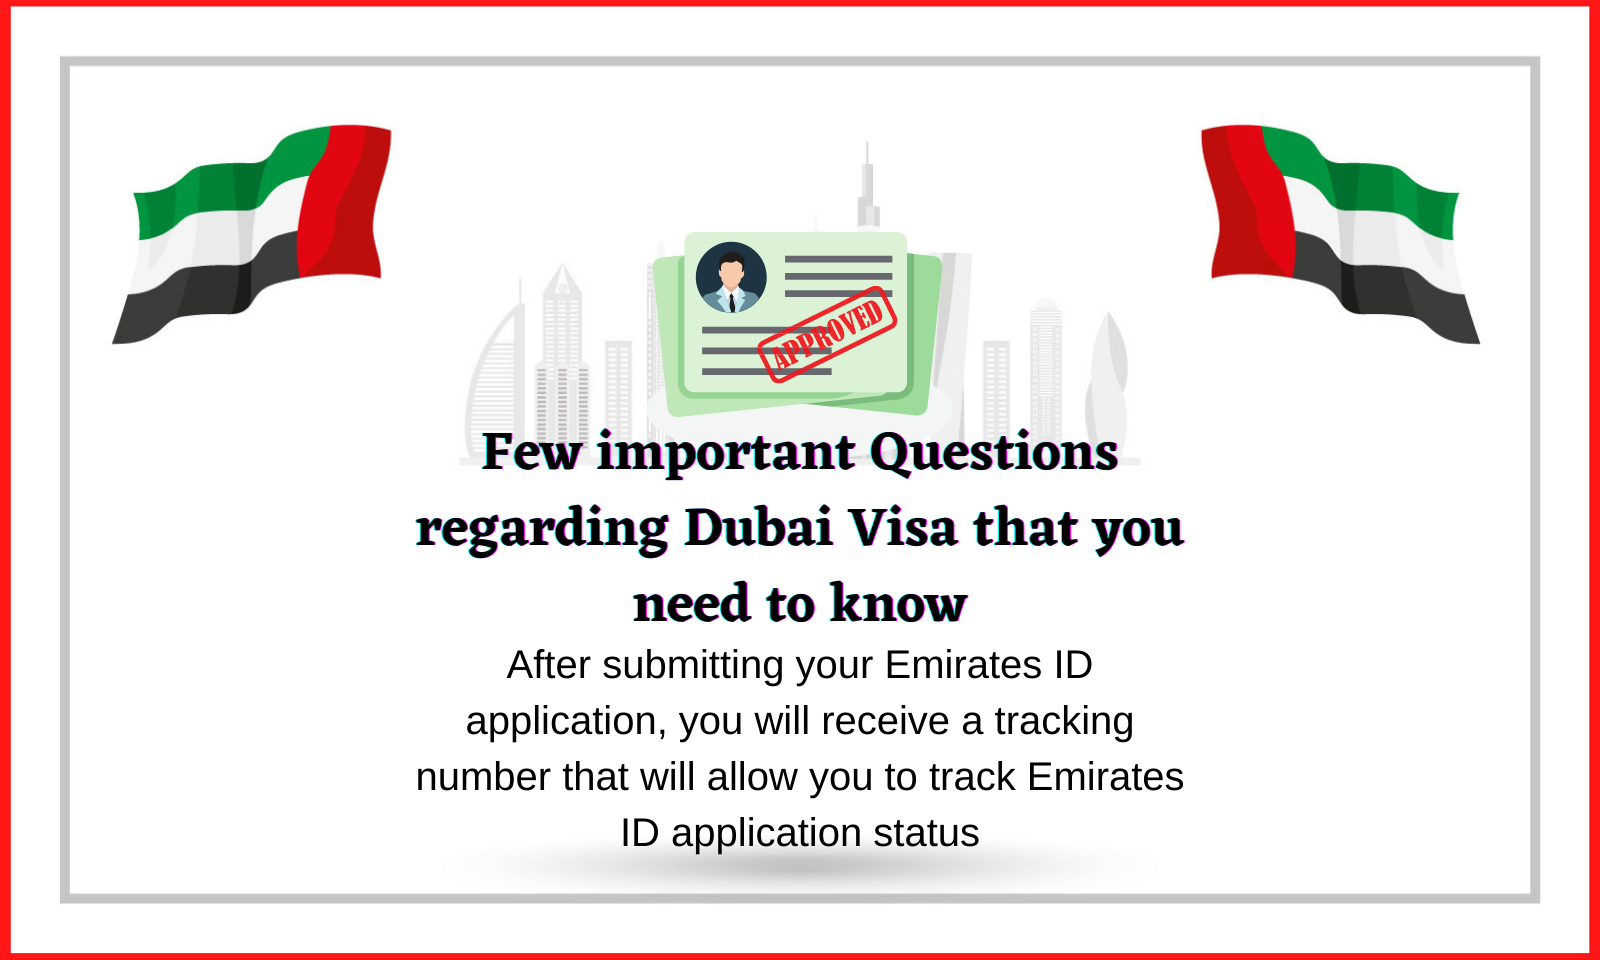 Few important Questions regarding Dubai Visa that you need to know